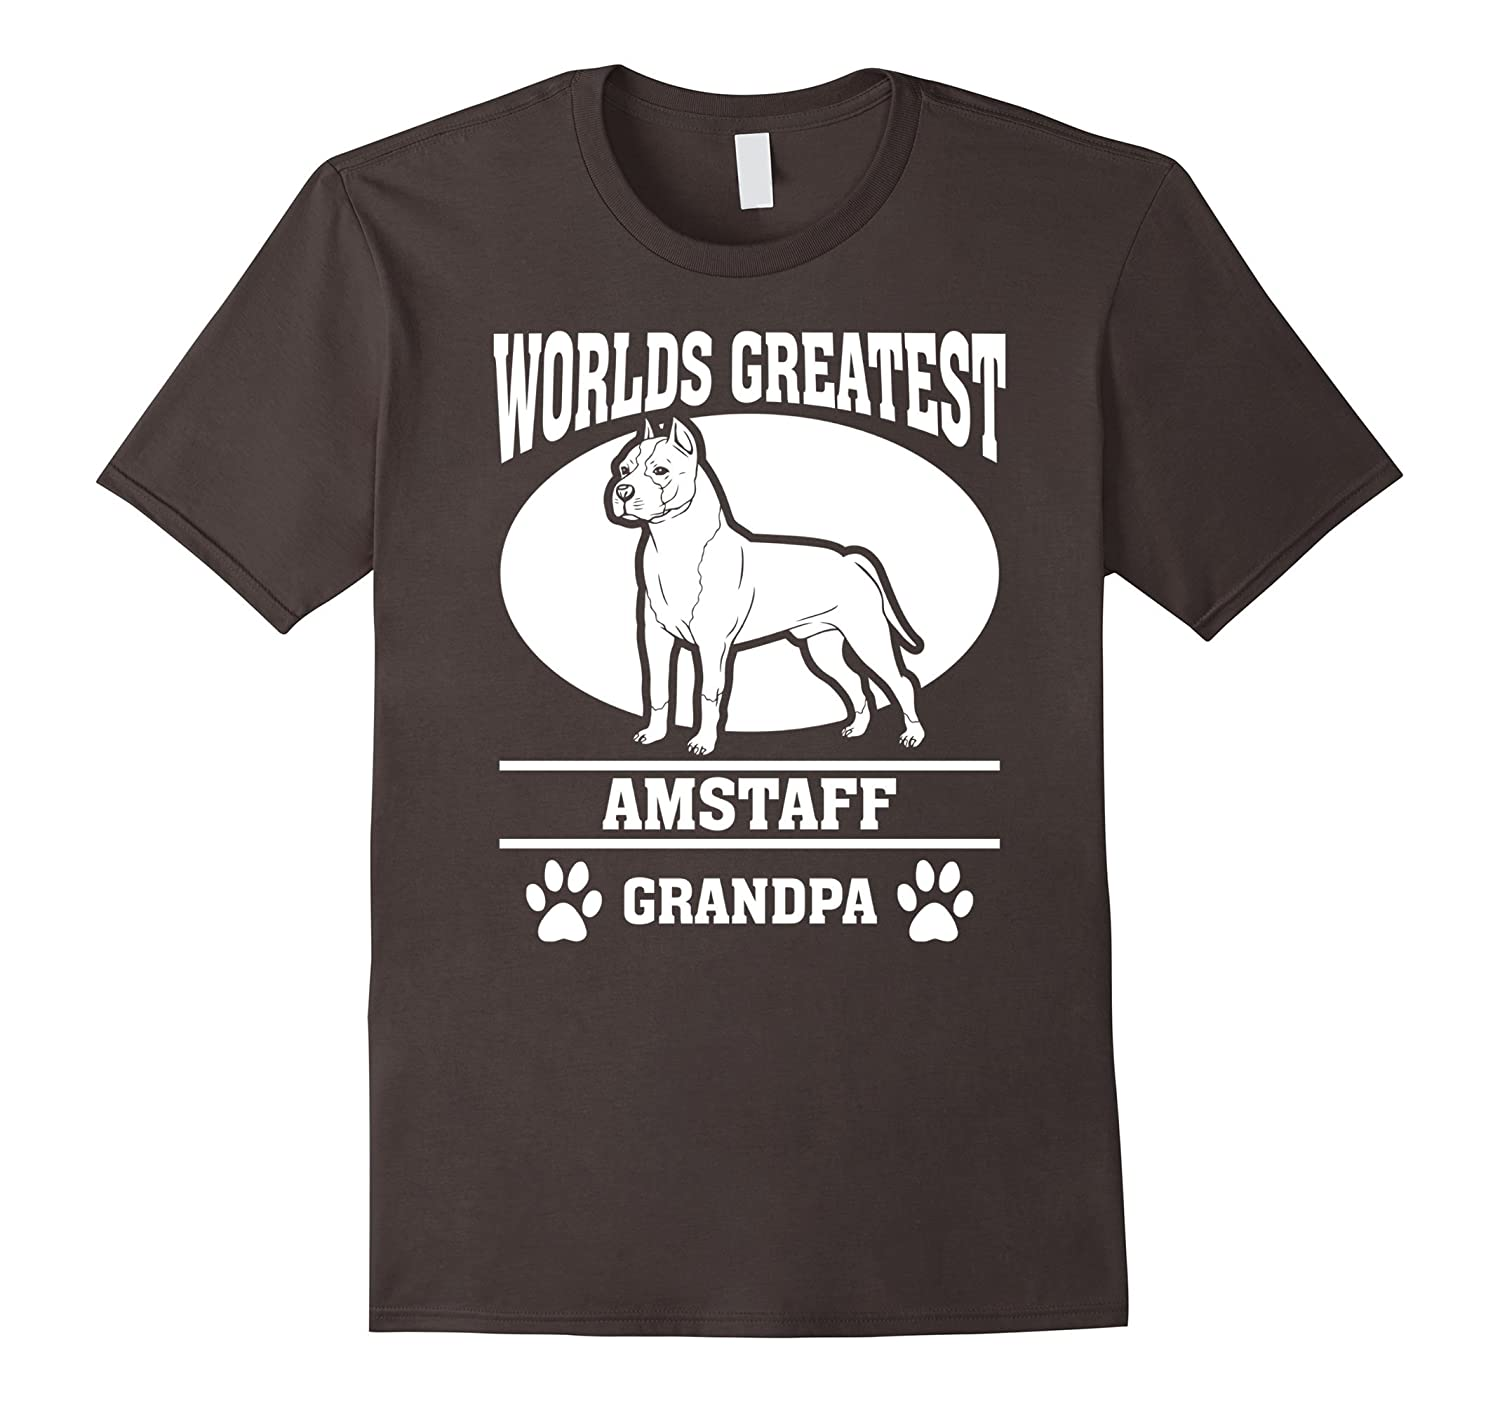 Mens American Staffordshire Terrier Grandpa T-shirt-ah my shirt one gift